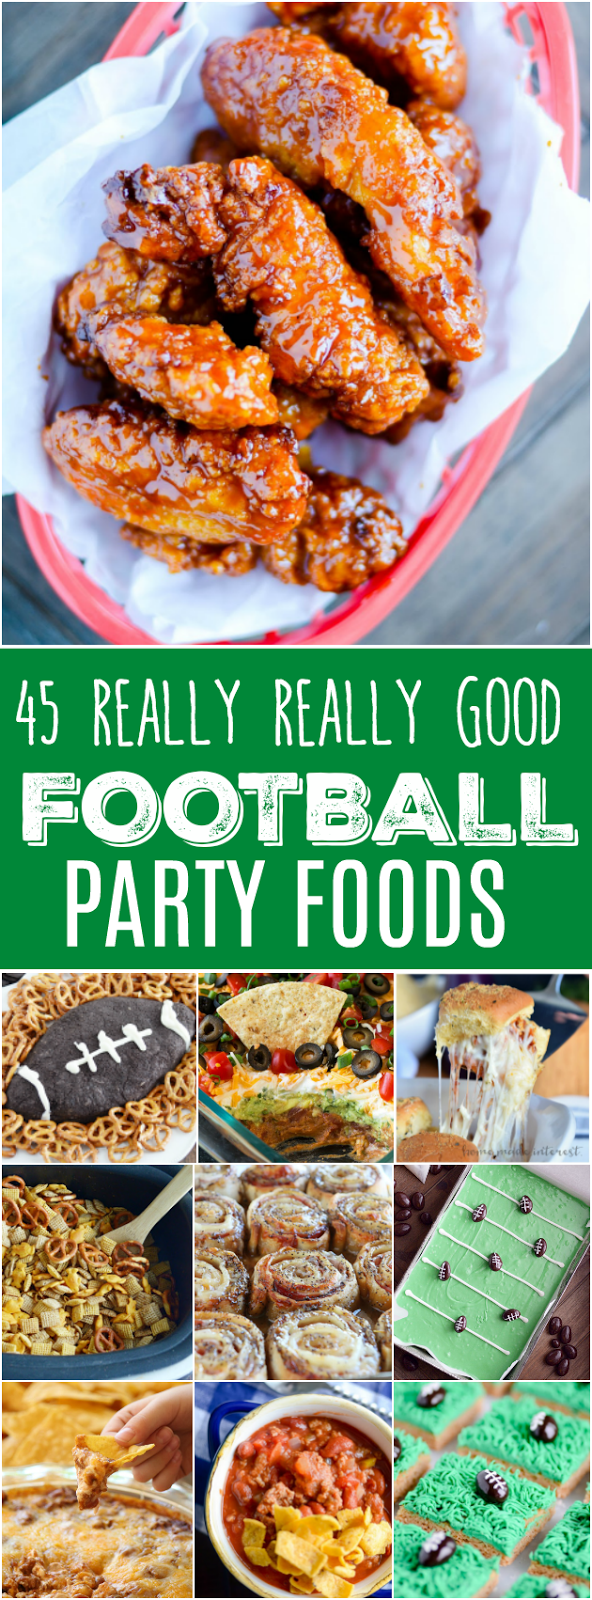 Tons of game day party food ideas like Chili Cheese Dip, Carne Asada Fries, Football Puppy Chow, and a Football Cookies & Cream Cheeseball!